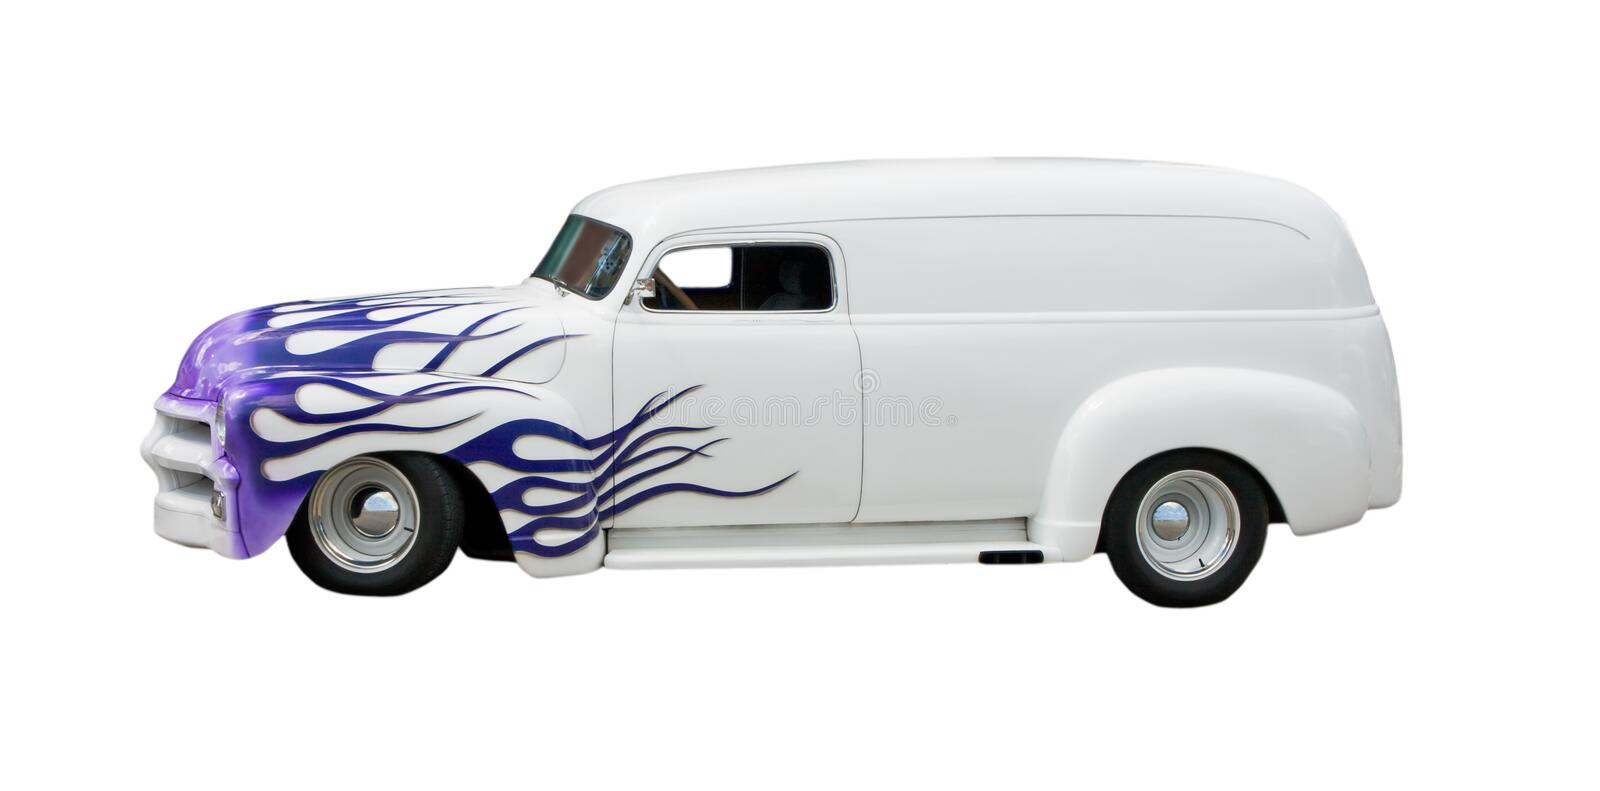 Retro hot rod van. Side view of retro hot rod van with flaming purple bodywork, isolated on white background royalty free stock image